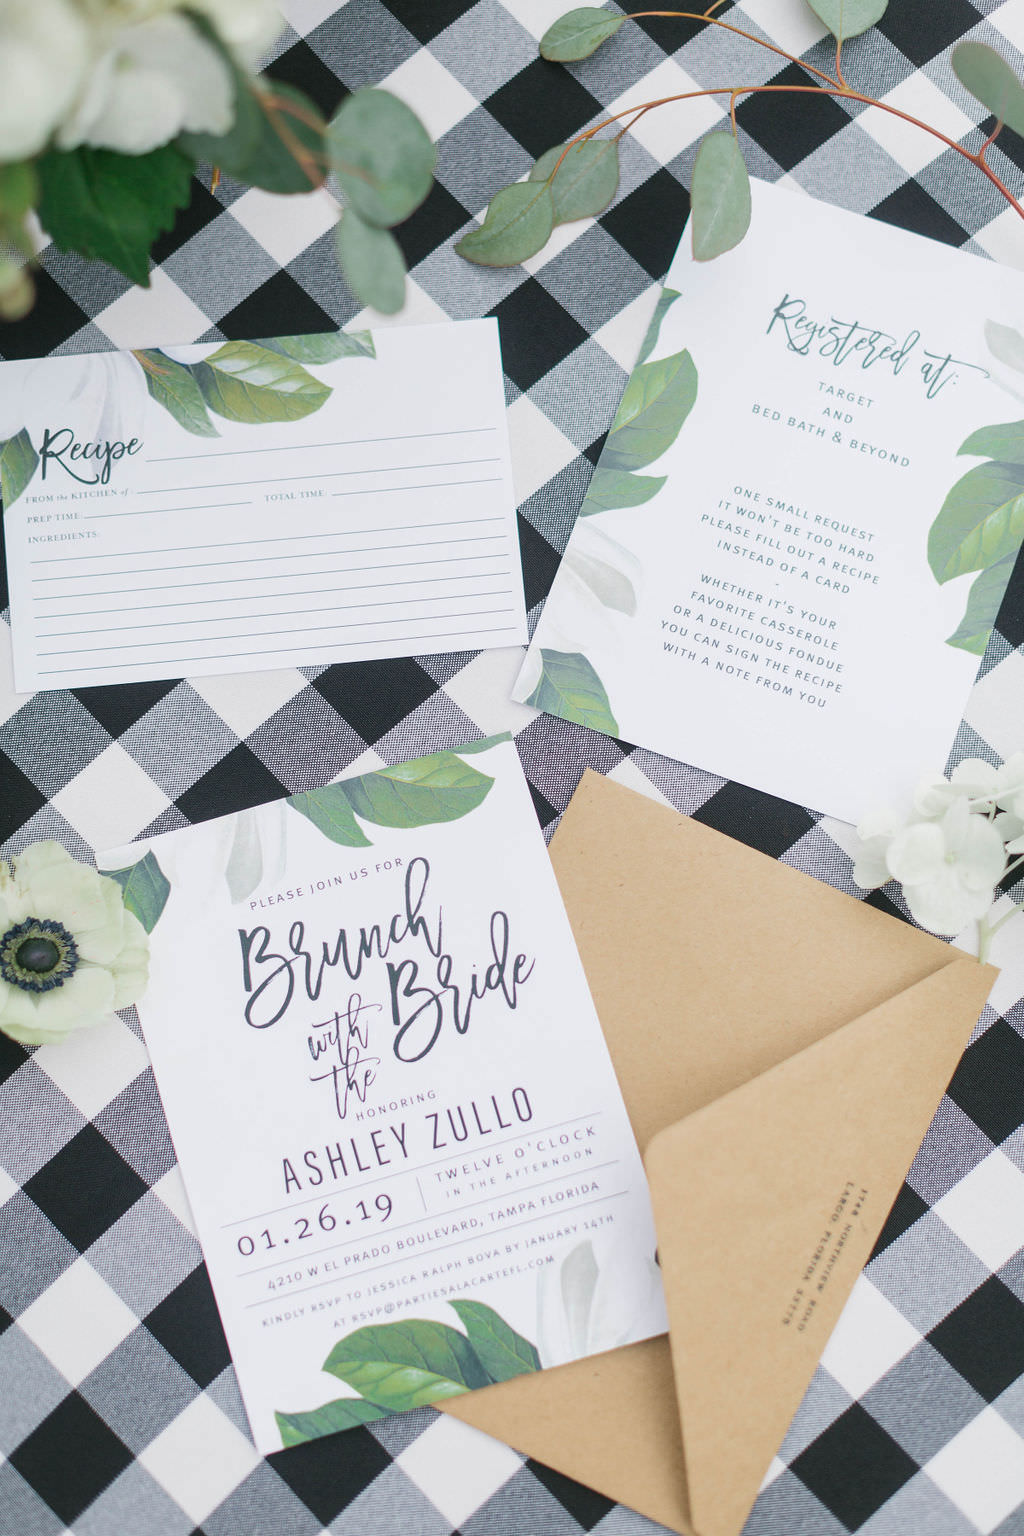 Magnolia Market Inspired Bridal Shower Invitation with Magnolia Flowers on Buffalo Plaid Linen | Over the Top Rental Linens